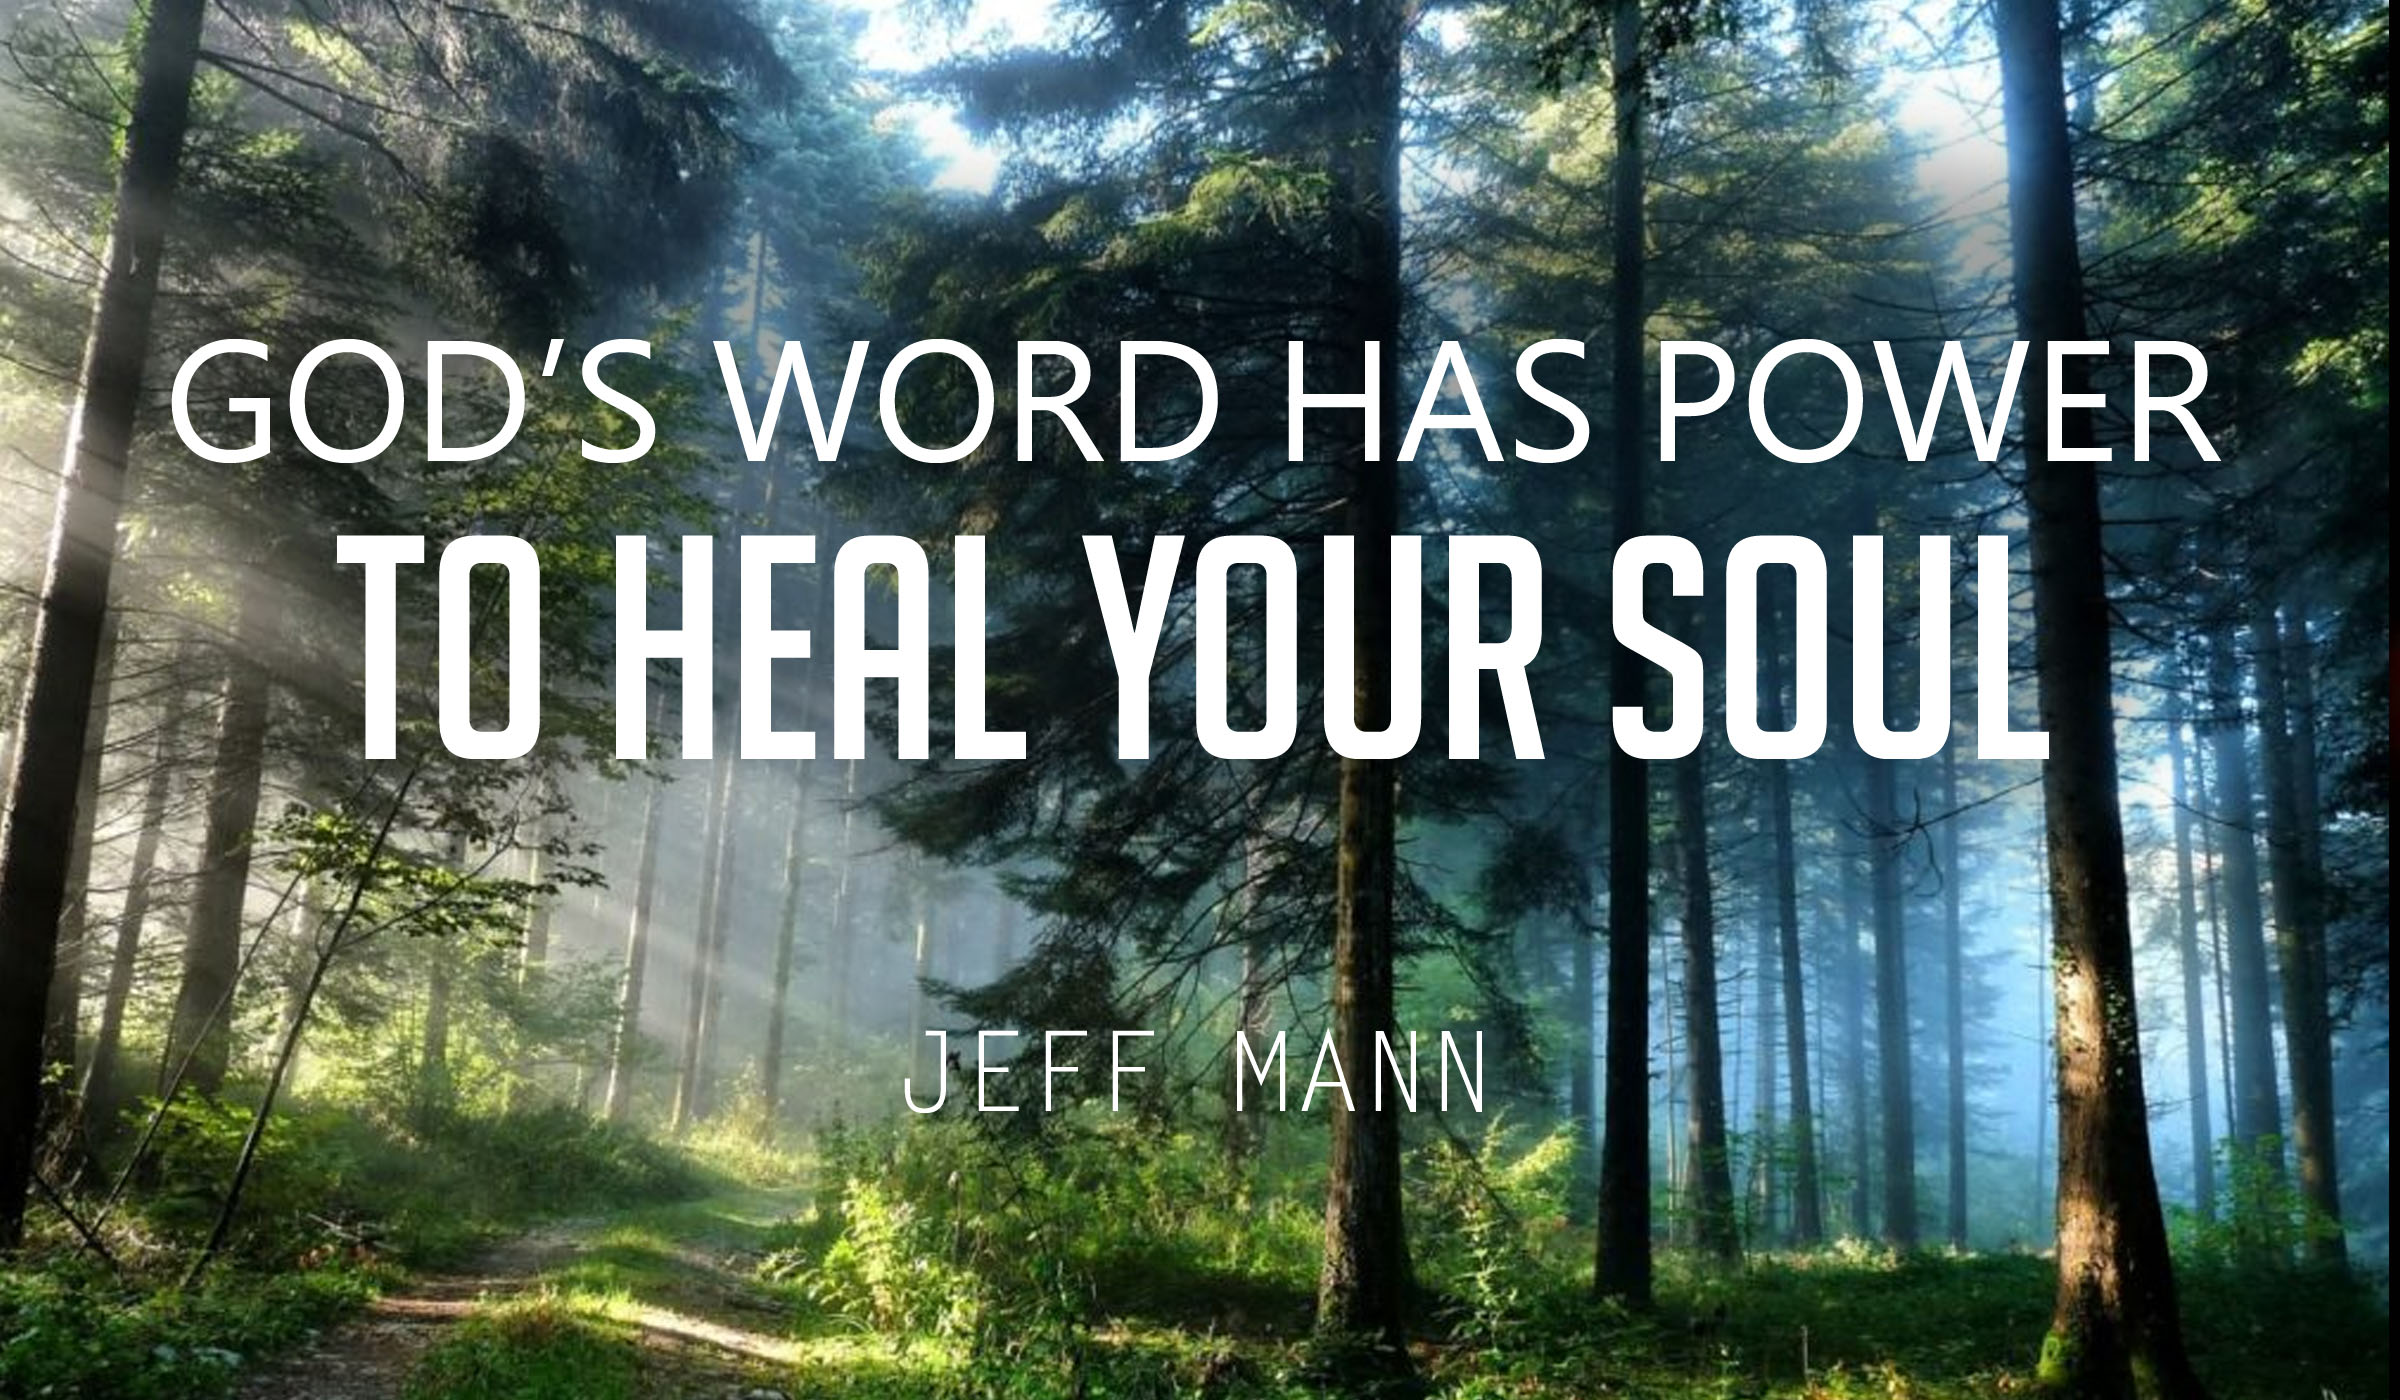 God's Word Has Power To Heal Your Soul